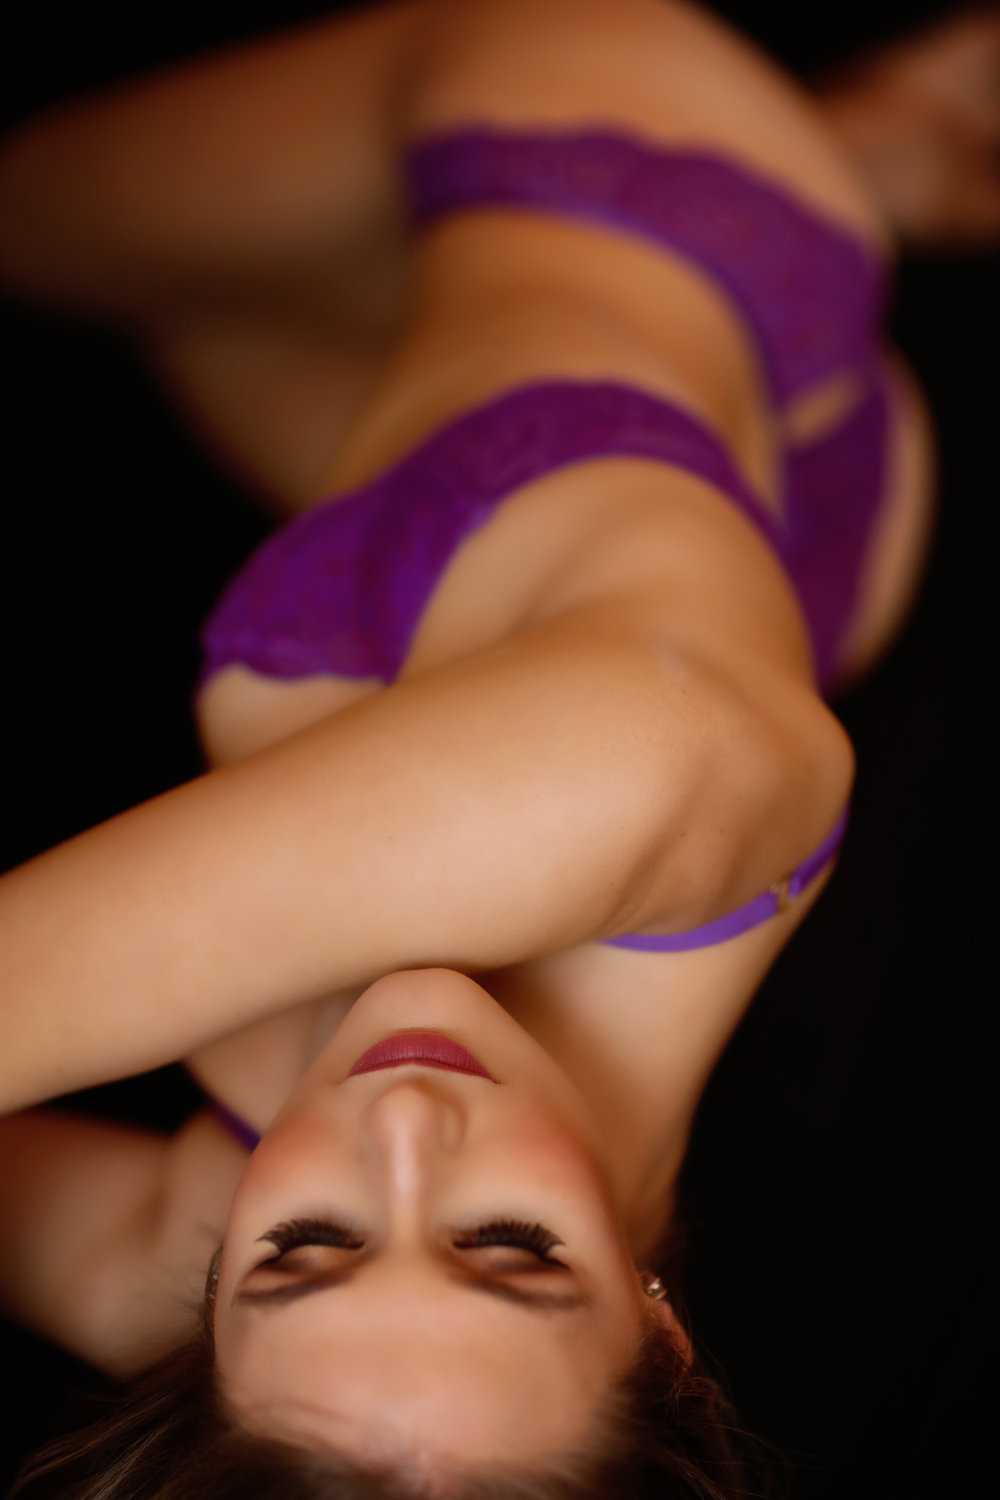 Fushia bra and panty boudoir photo shoot